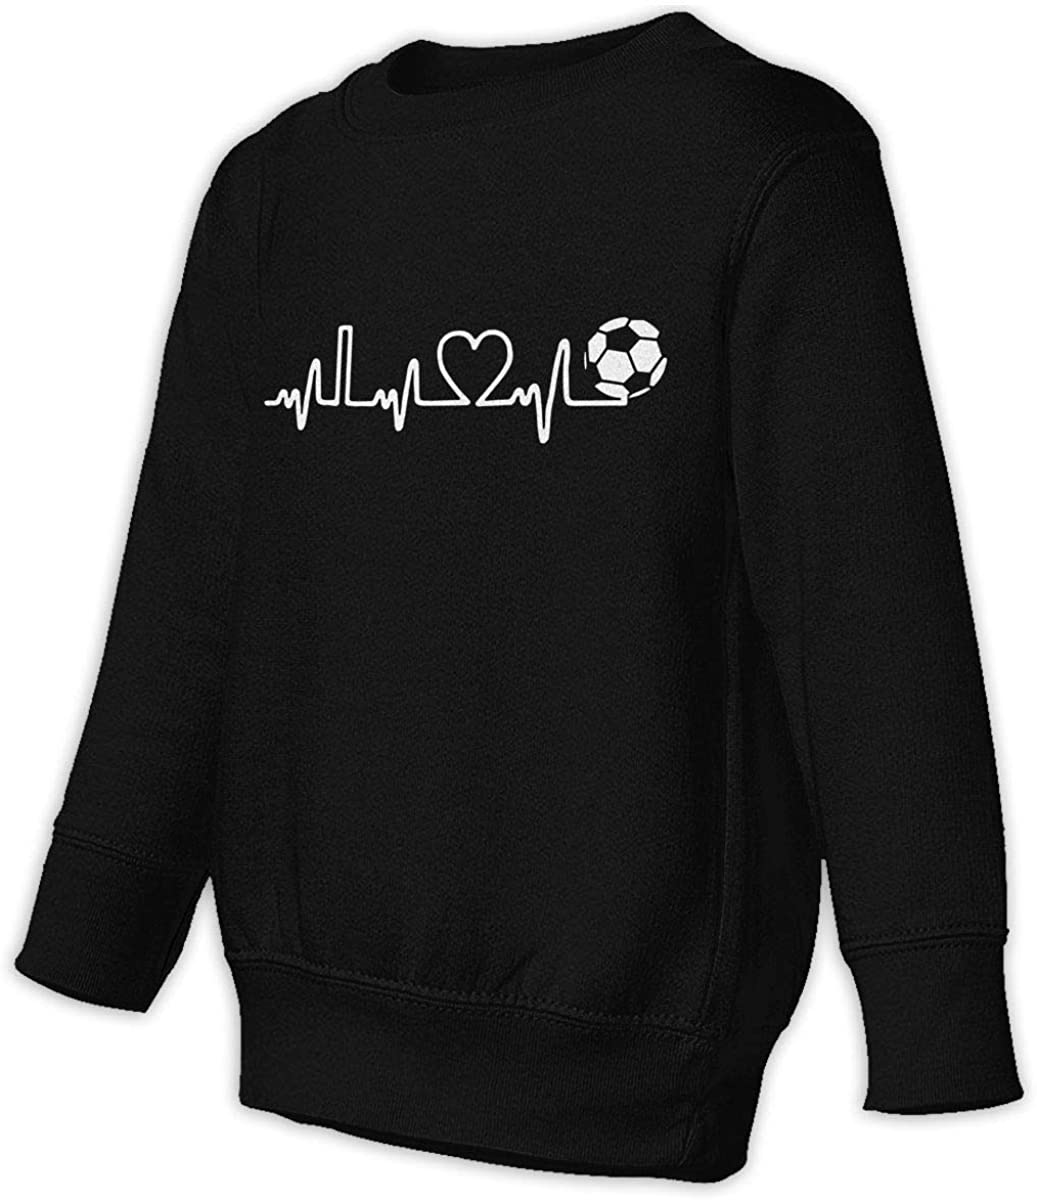 I Love Soccer Boys Girls Pullover Sweaters Crewneck Sweatshirts Clothes for 2-6 Years Old Children